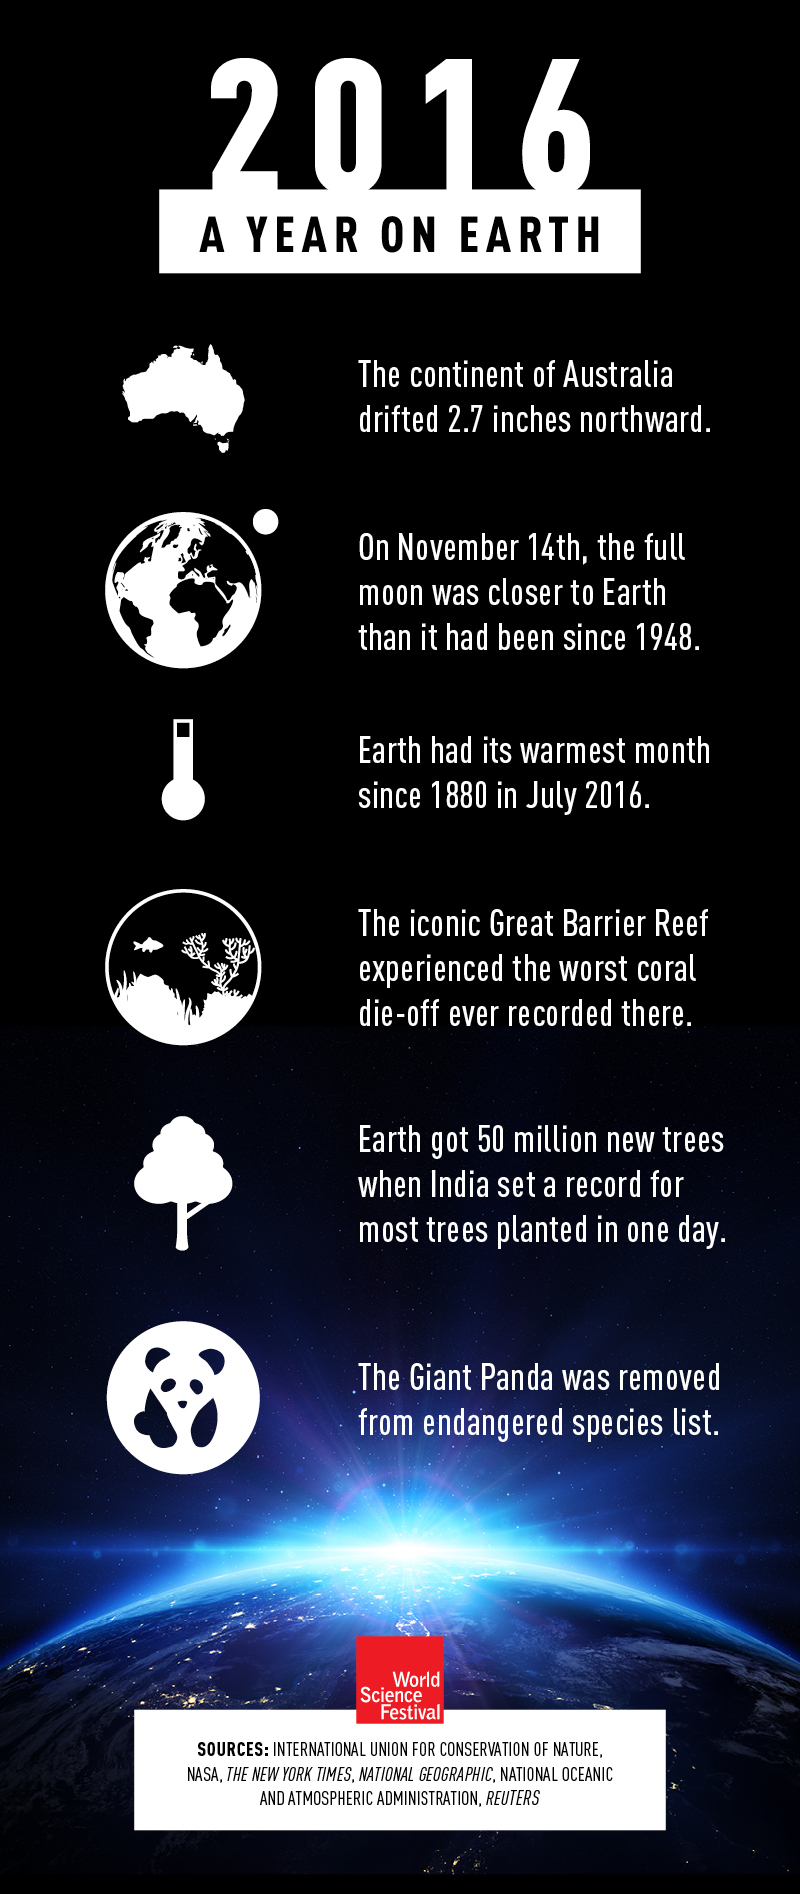 2016 A Year on Earth